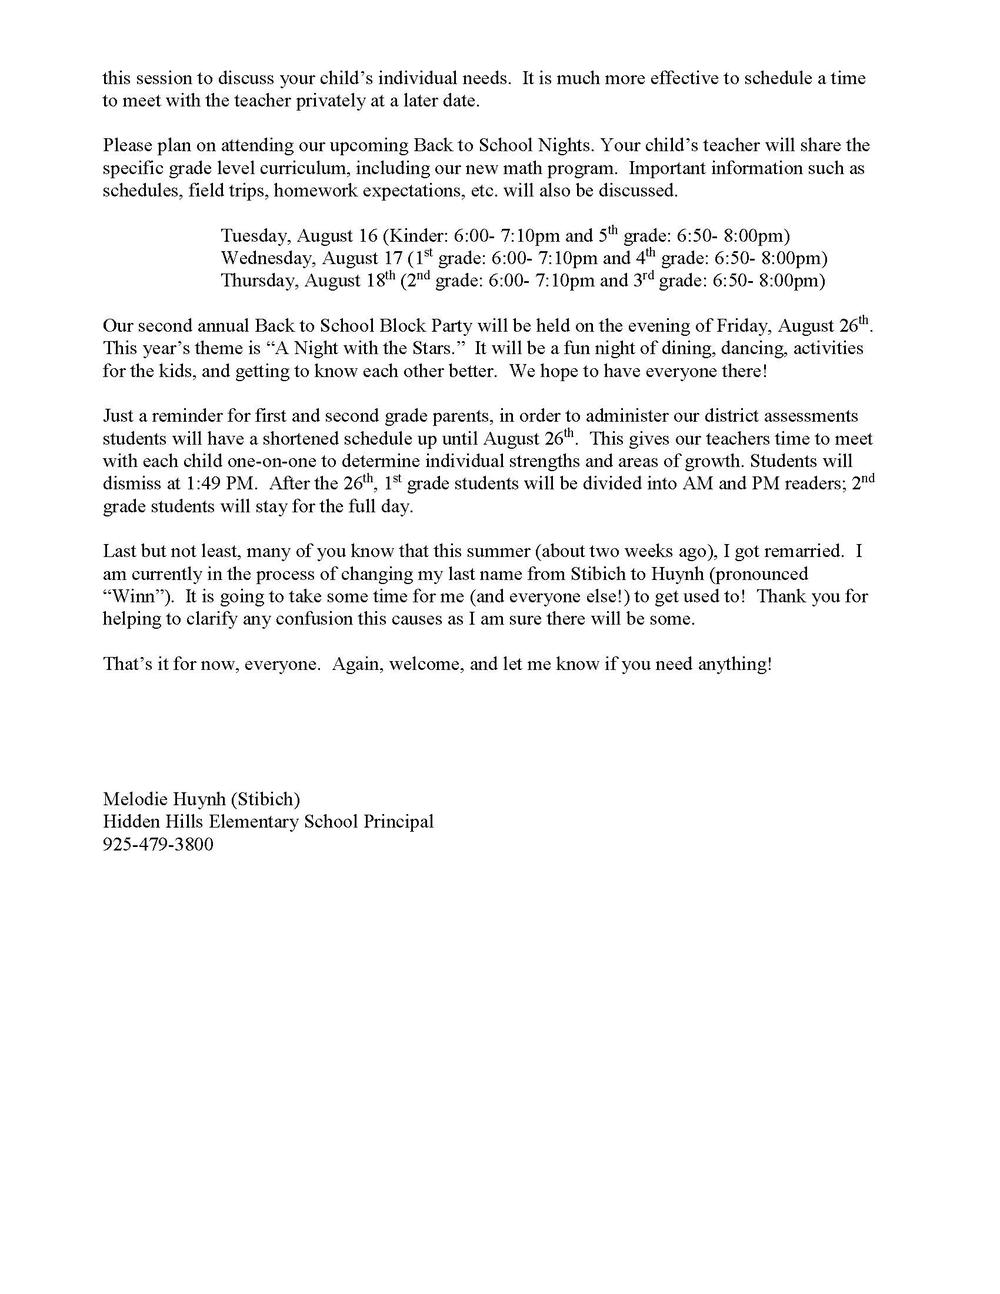 2016-08-02-14-23-34_Back to School Parent Letter 2016_Page_2.jpg